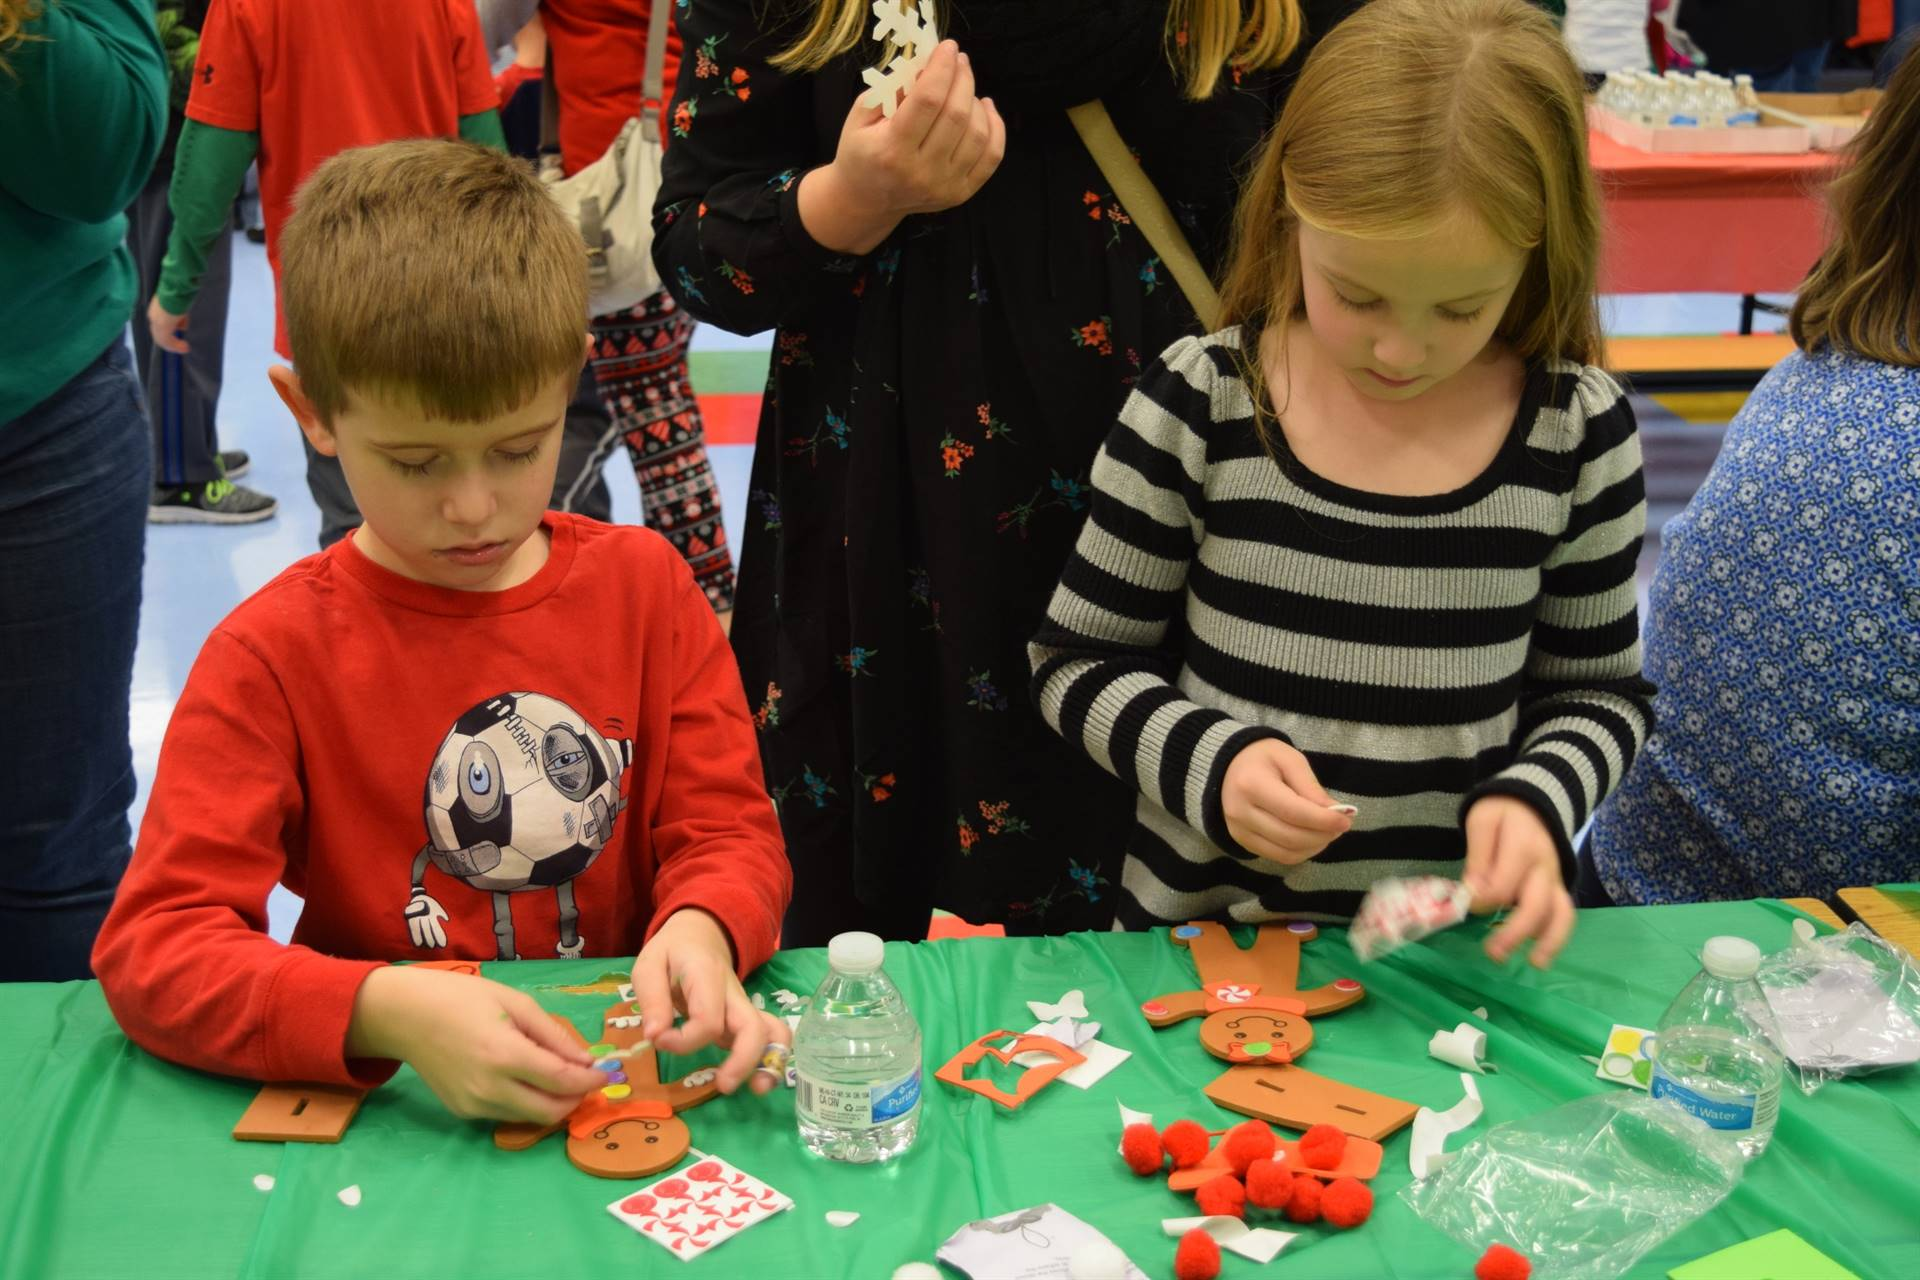 Boy and girl making gingerbread ornaments